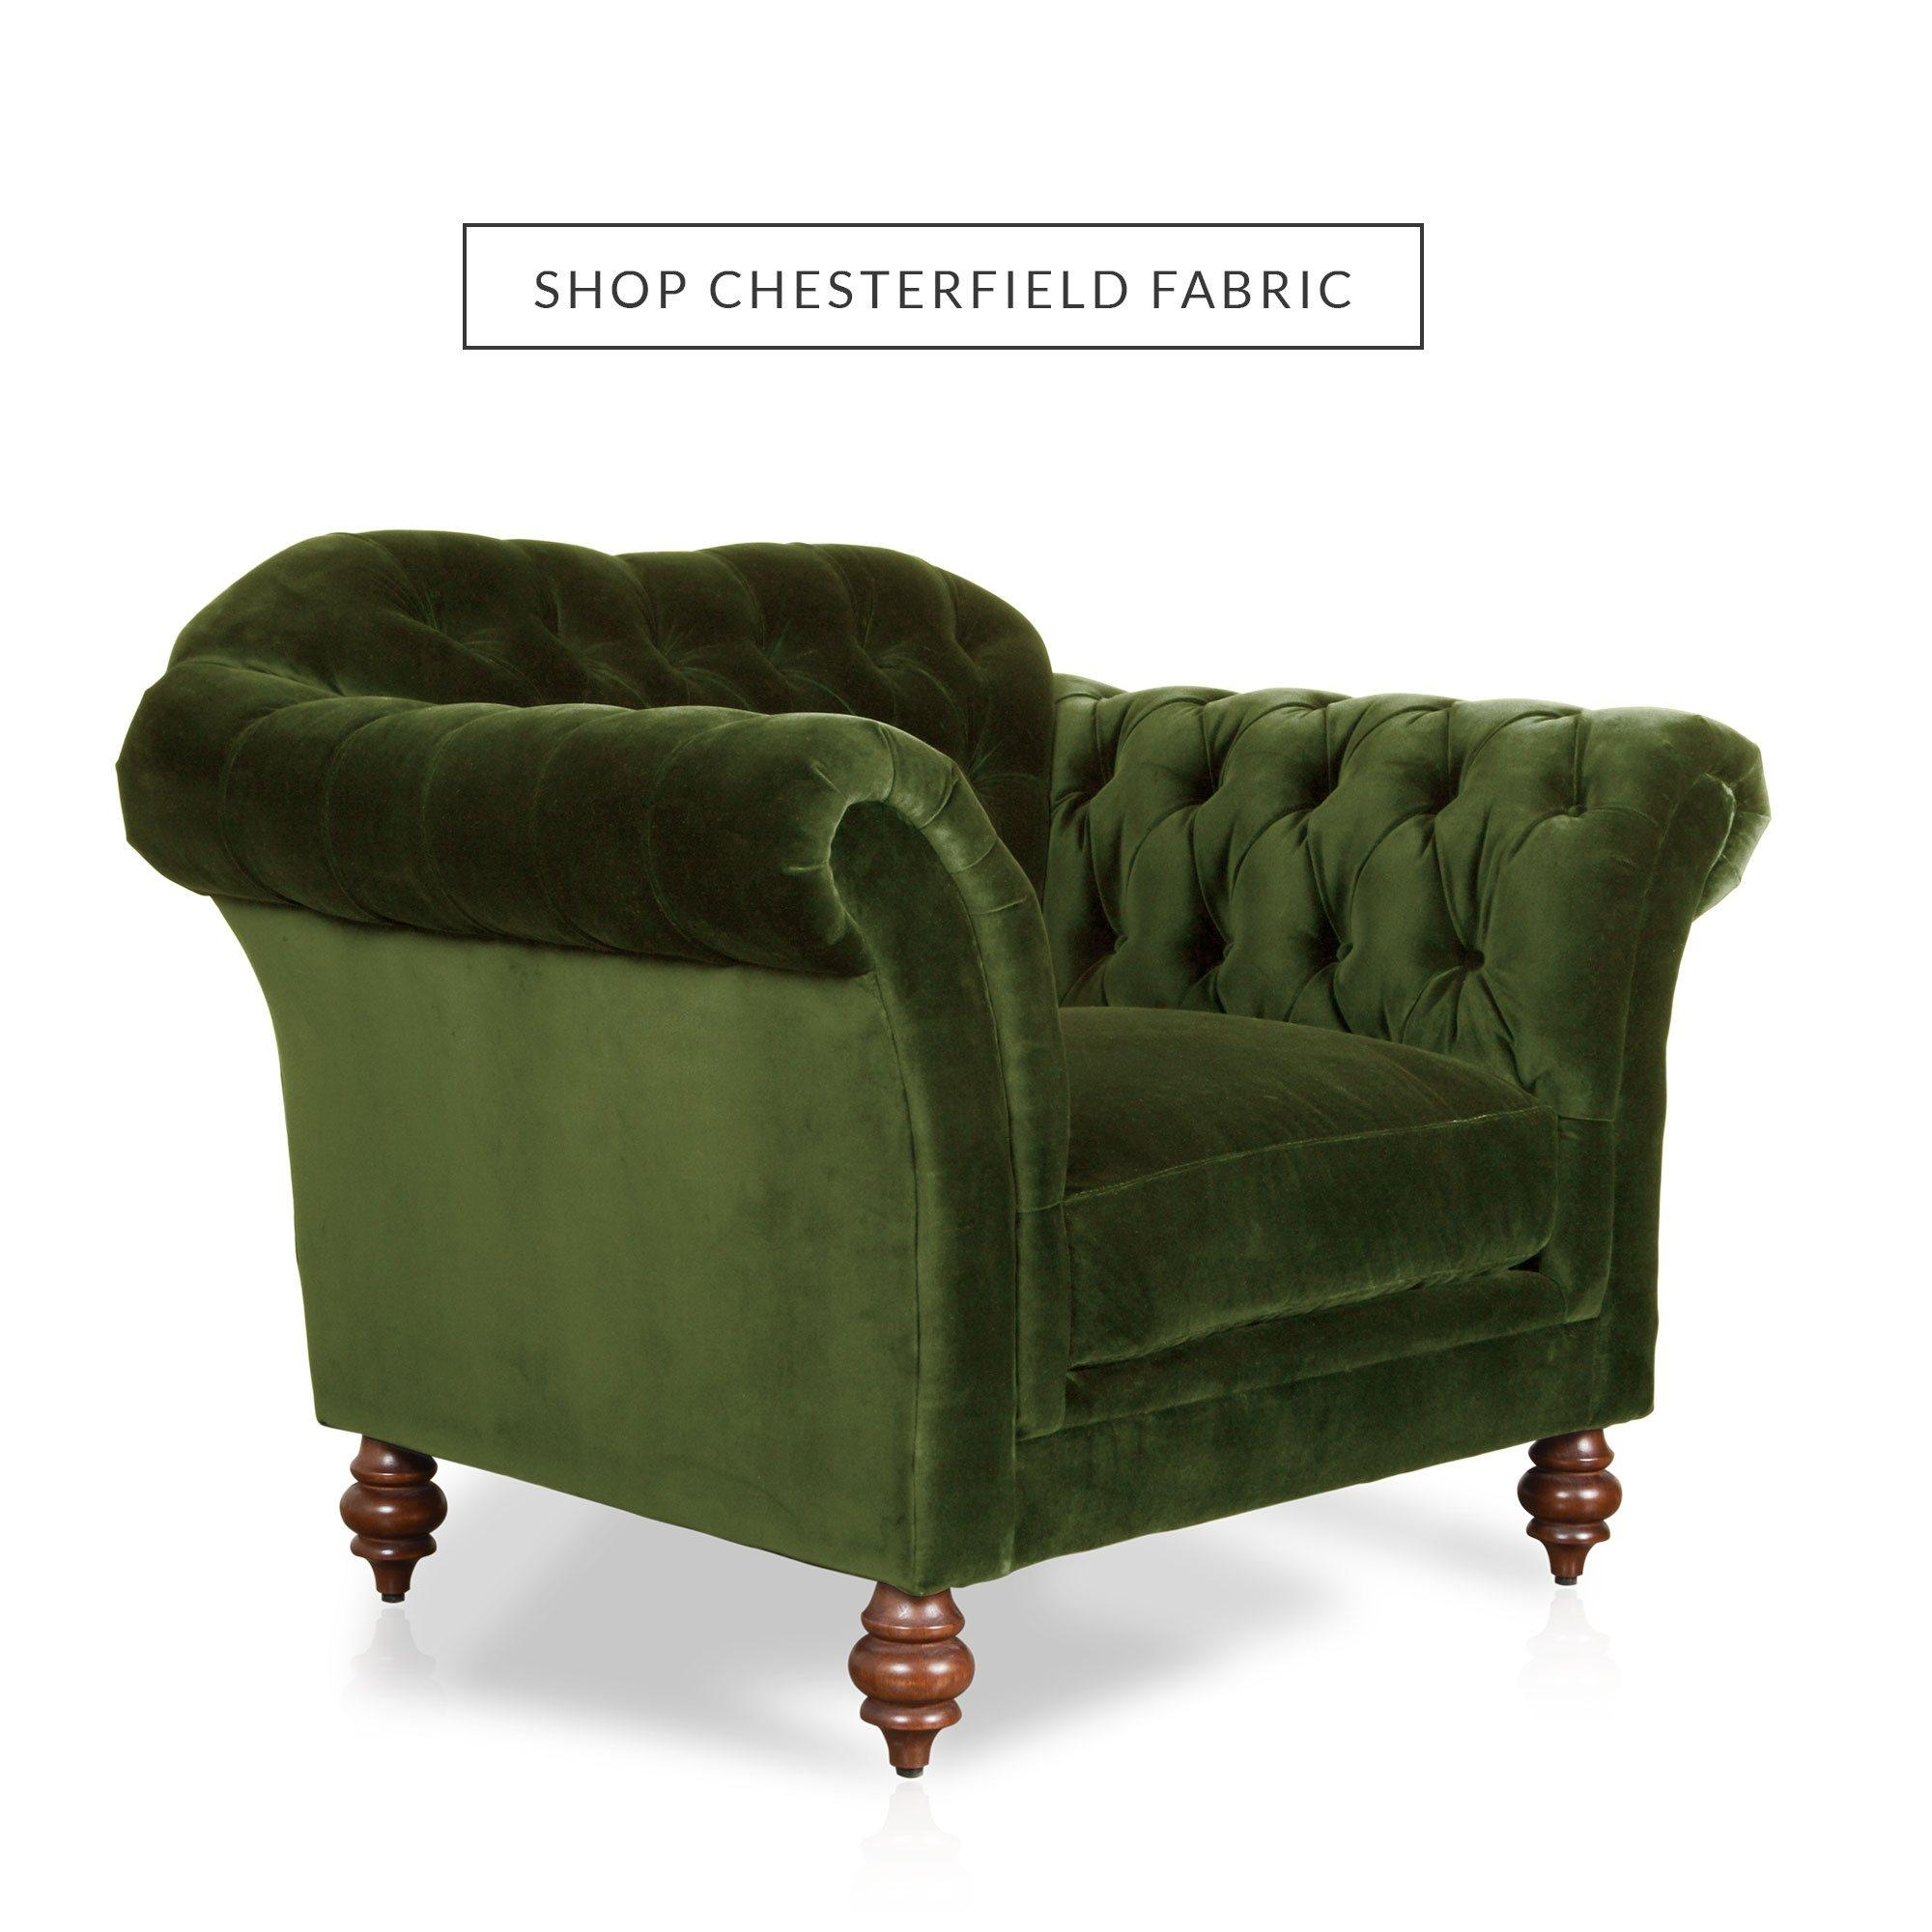 Buy A Chesterfield Sofa 20 Photos Chesterfield Sofas And Chairs Sofa Ideas